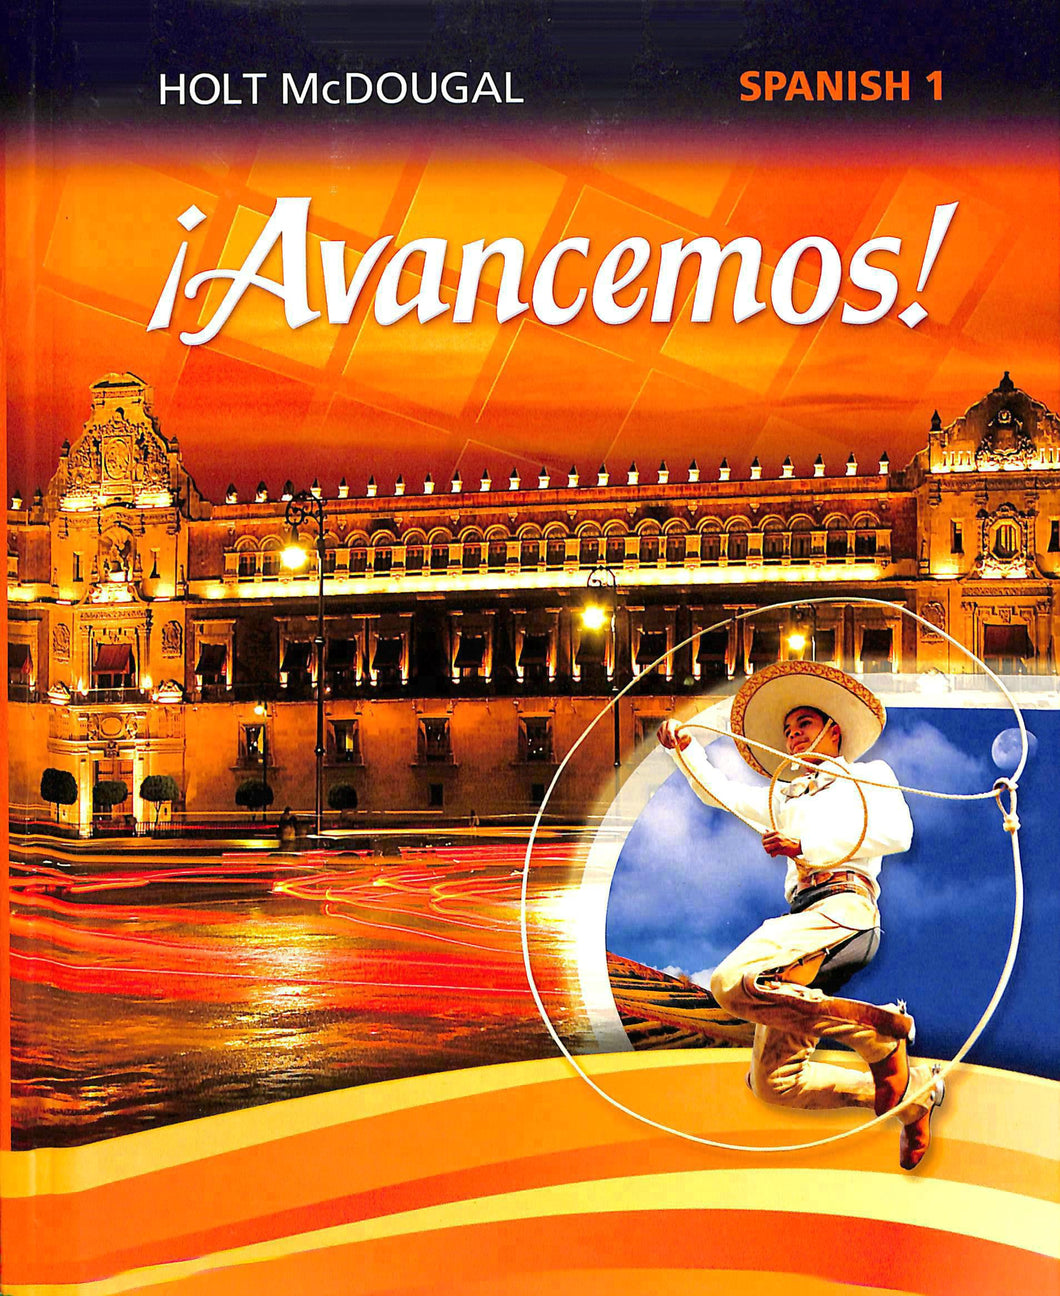 Avancemos! Spanish 1 Textbook